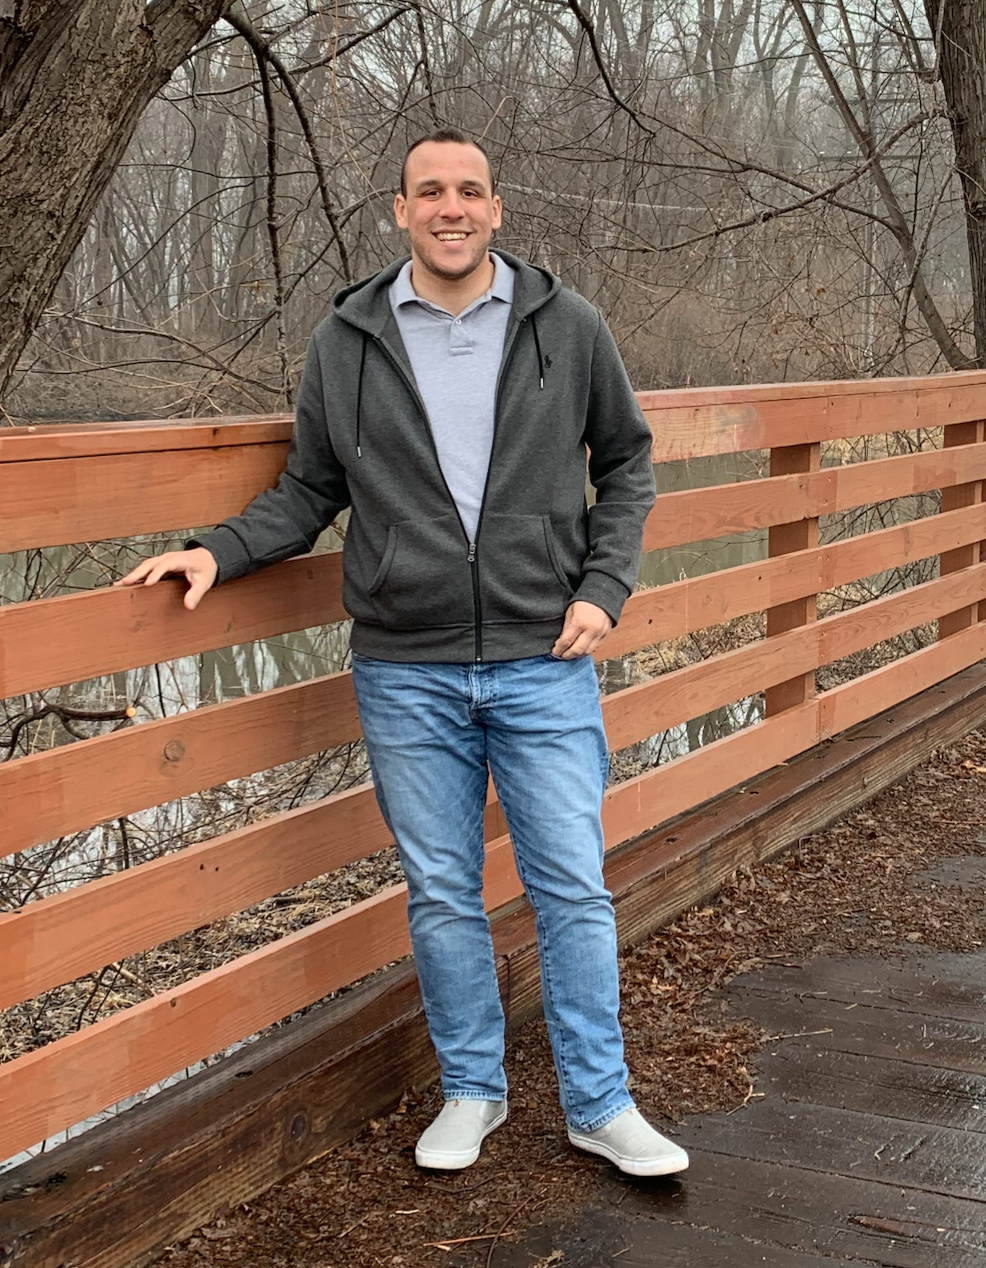 2021 Remarkable Volunteer: Anthony Cicchino